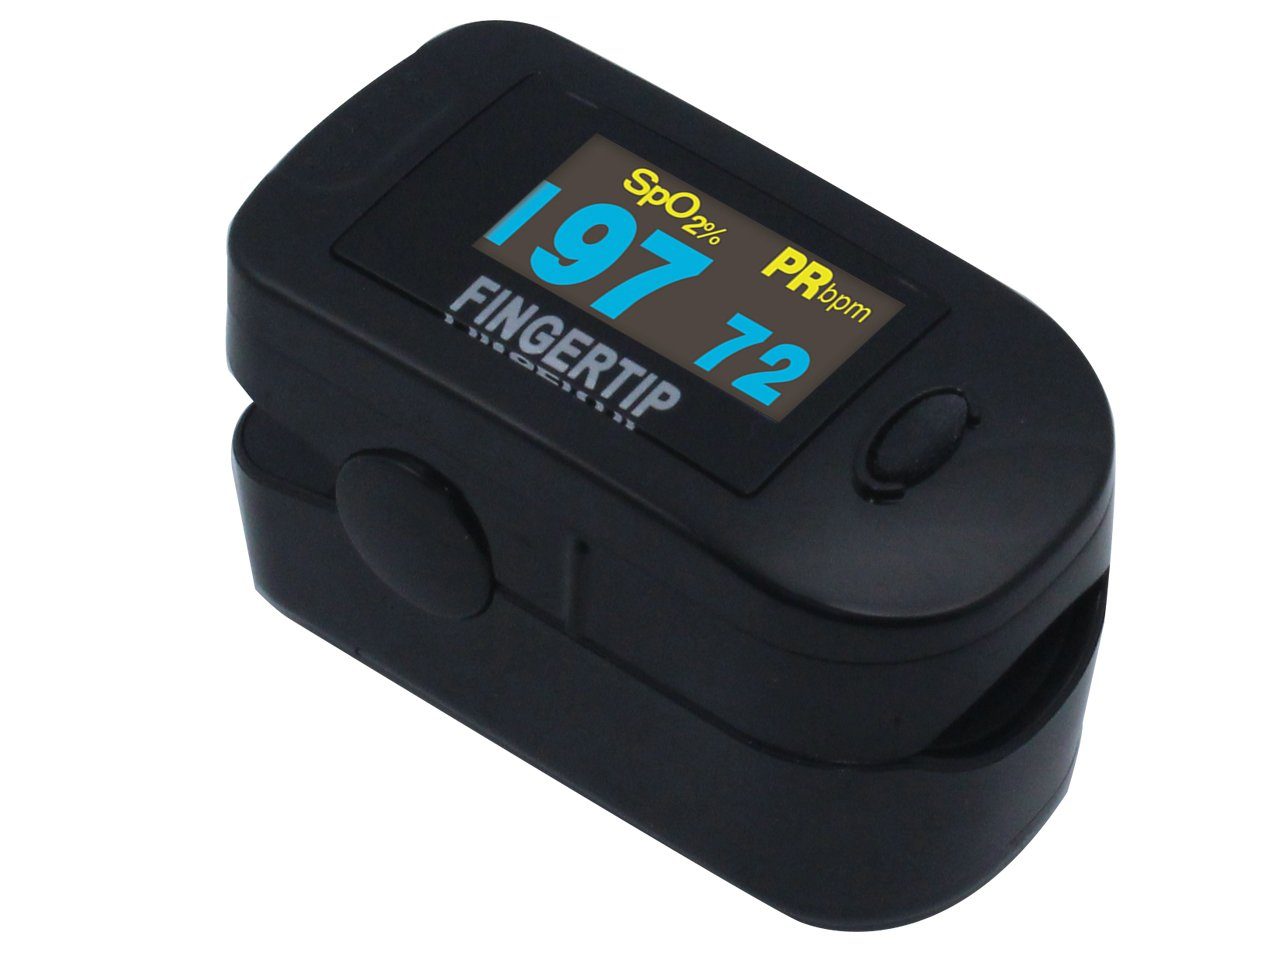 Concord BlackOx Deluxe Dual Color OLED Display Fingertip Pulse Oximeter  with 6-Way Display,